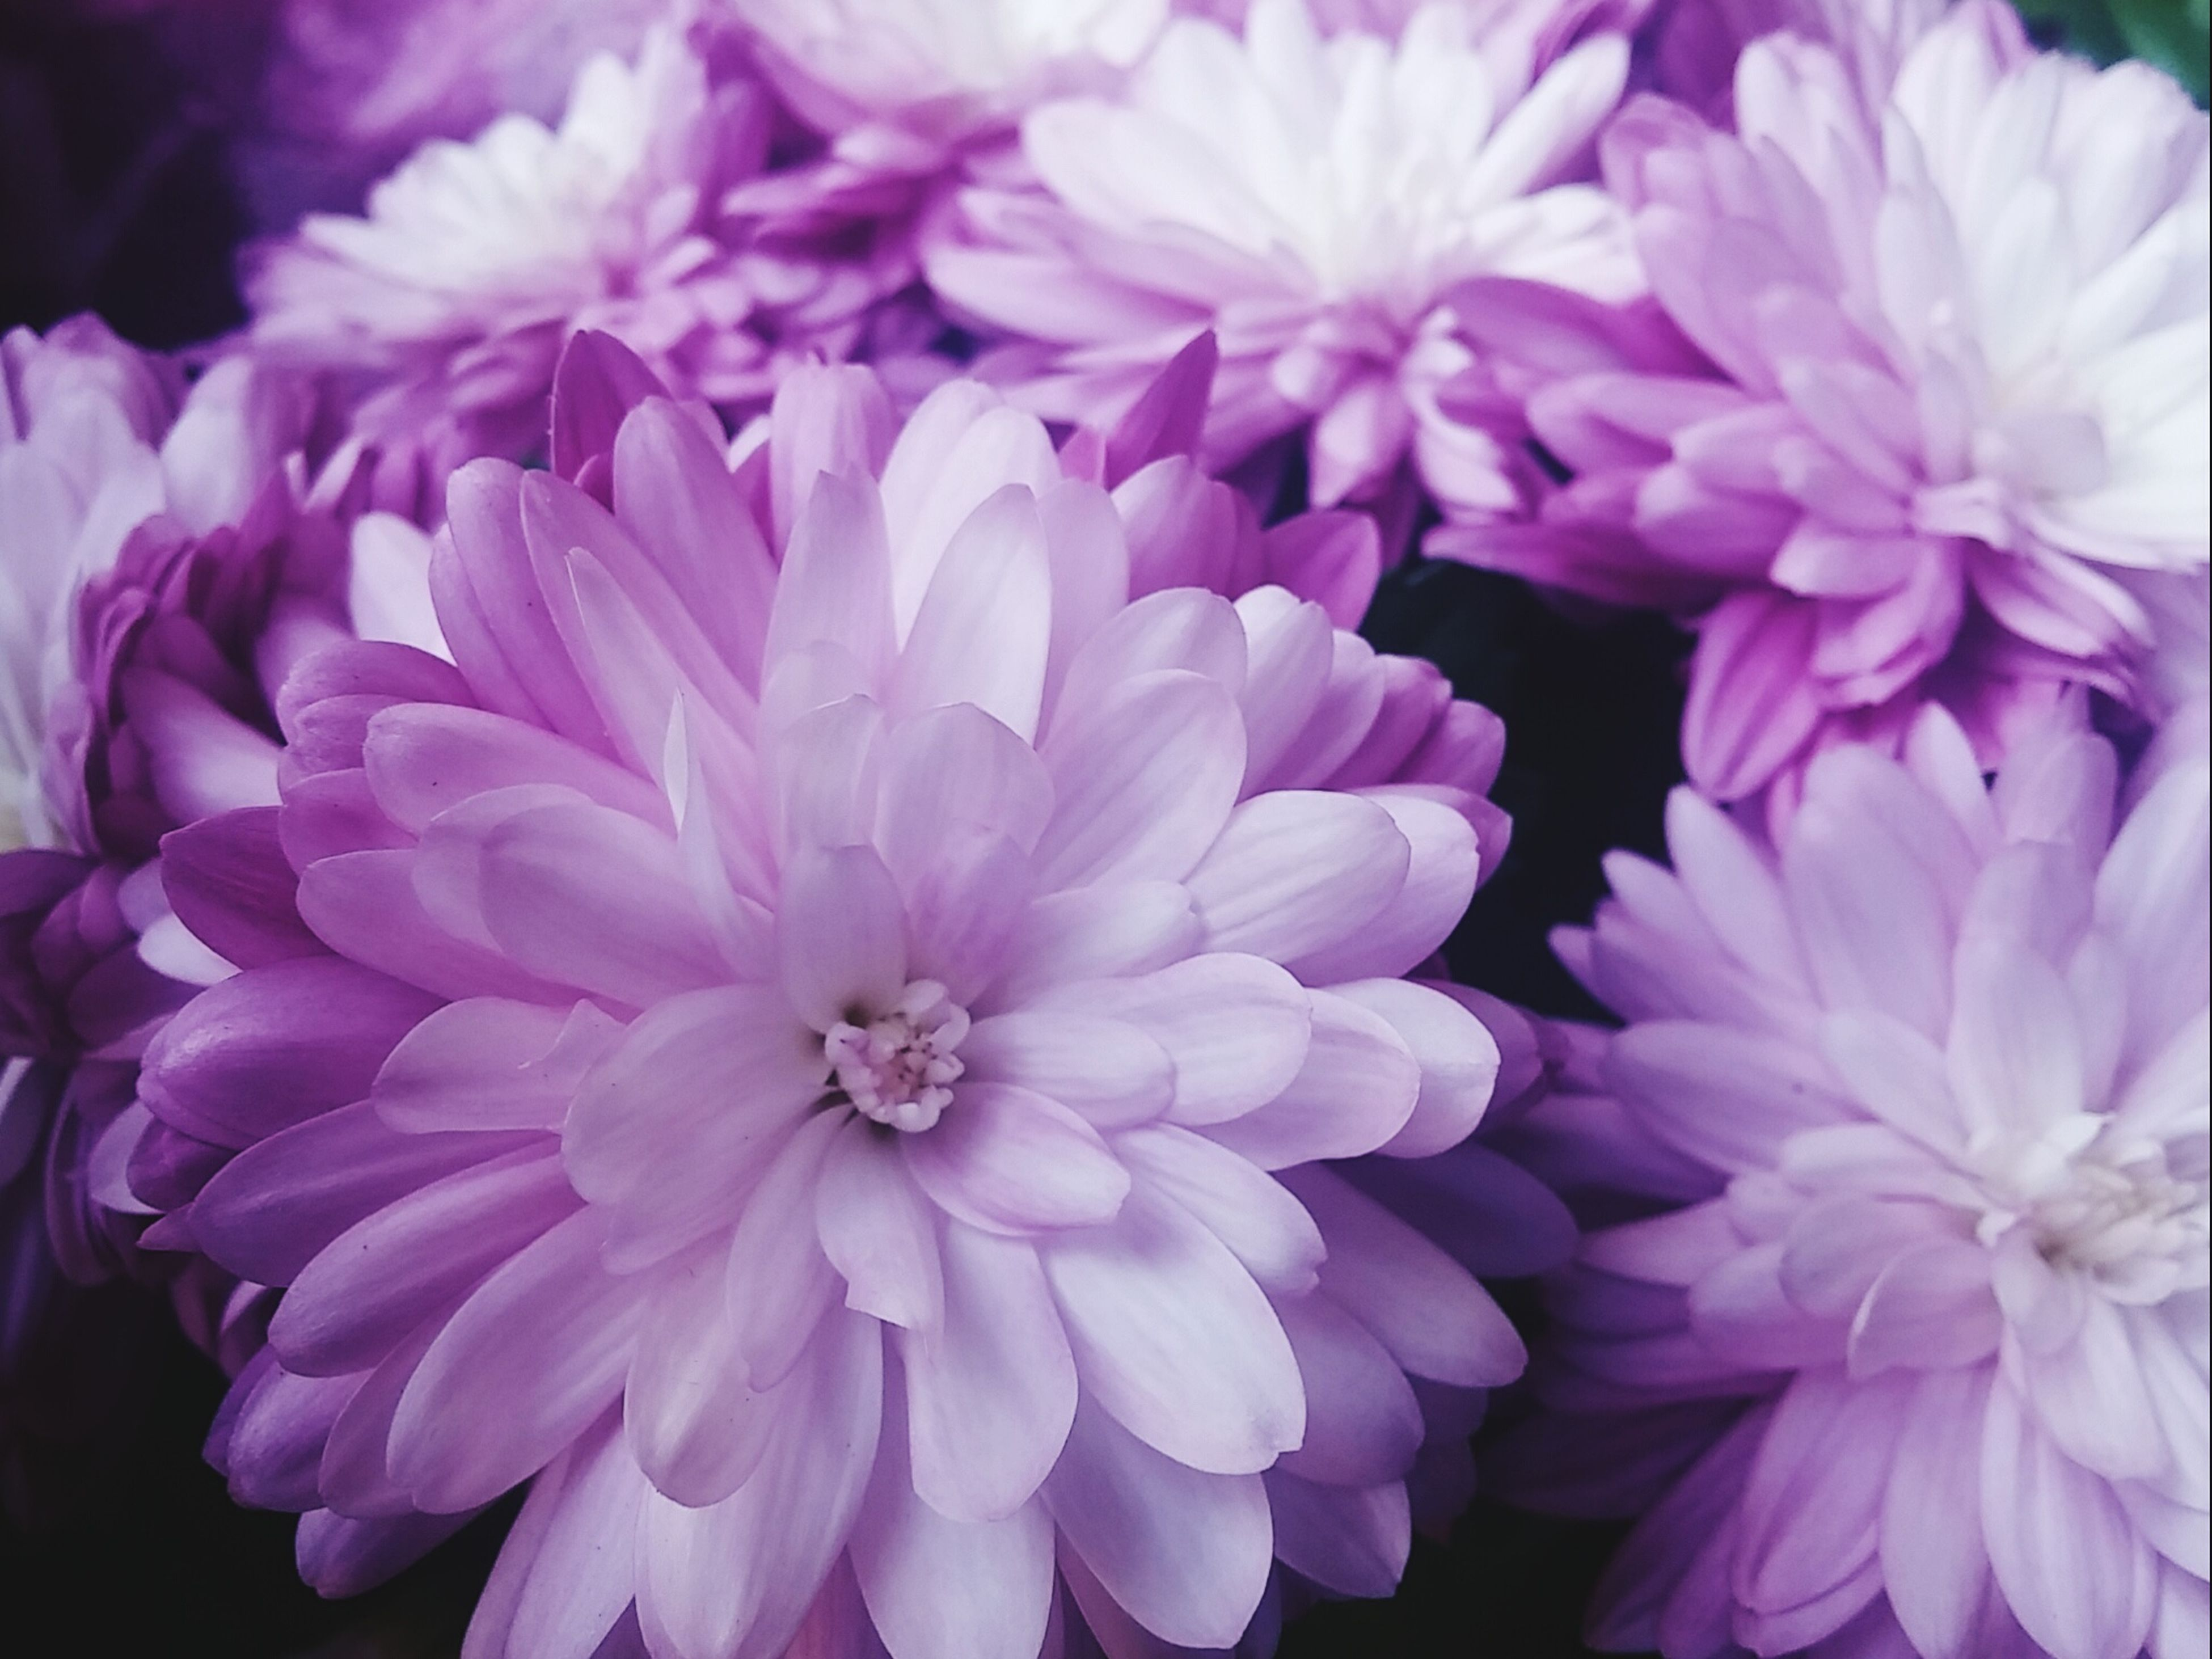 flower, freshness, petal, fragility, flower head, beauty in nature, close-up, growth, nature, pink color, blooming, plant, focus on foreground, high angle view, in bloom, no people, purple, blossom, outdoors, day